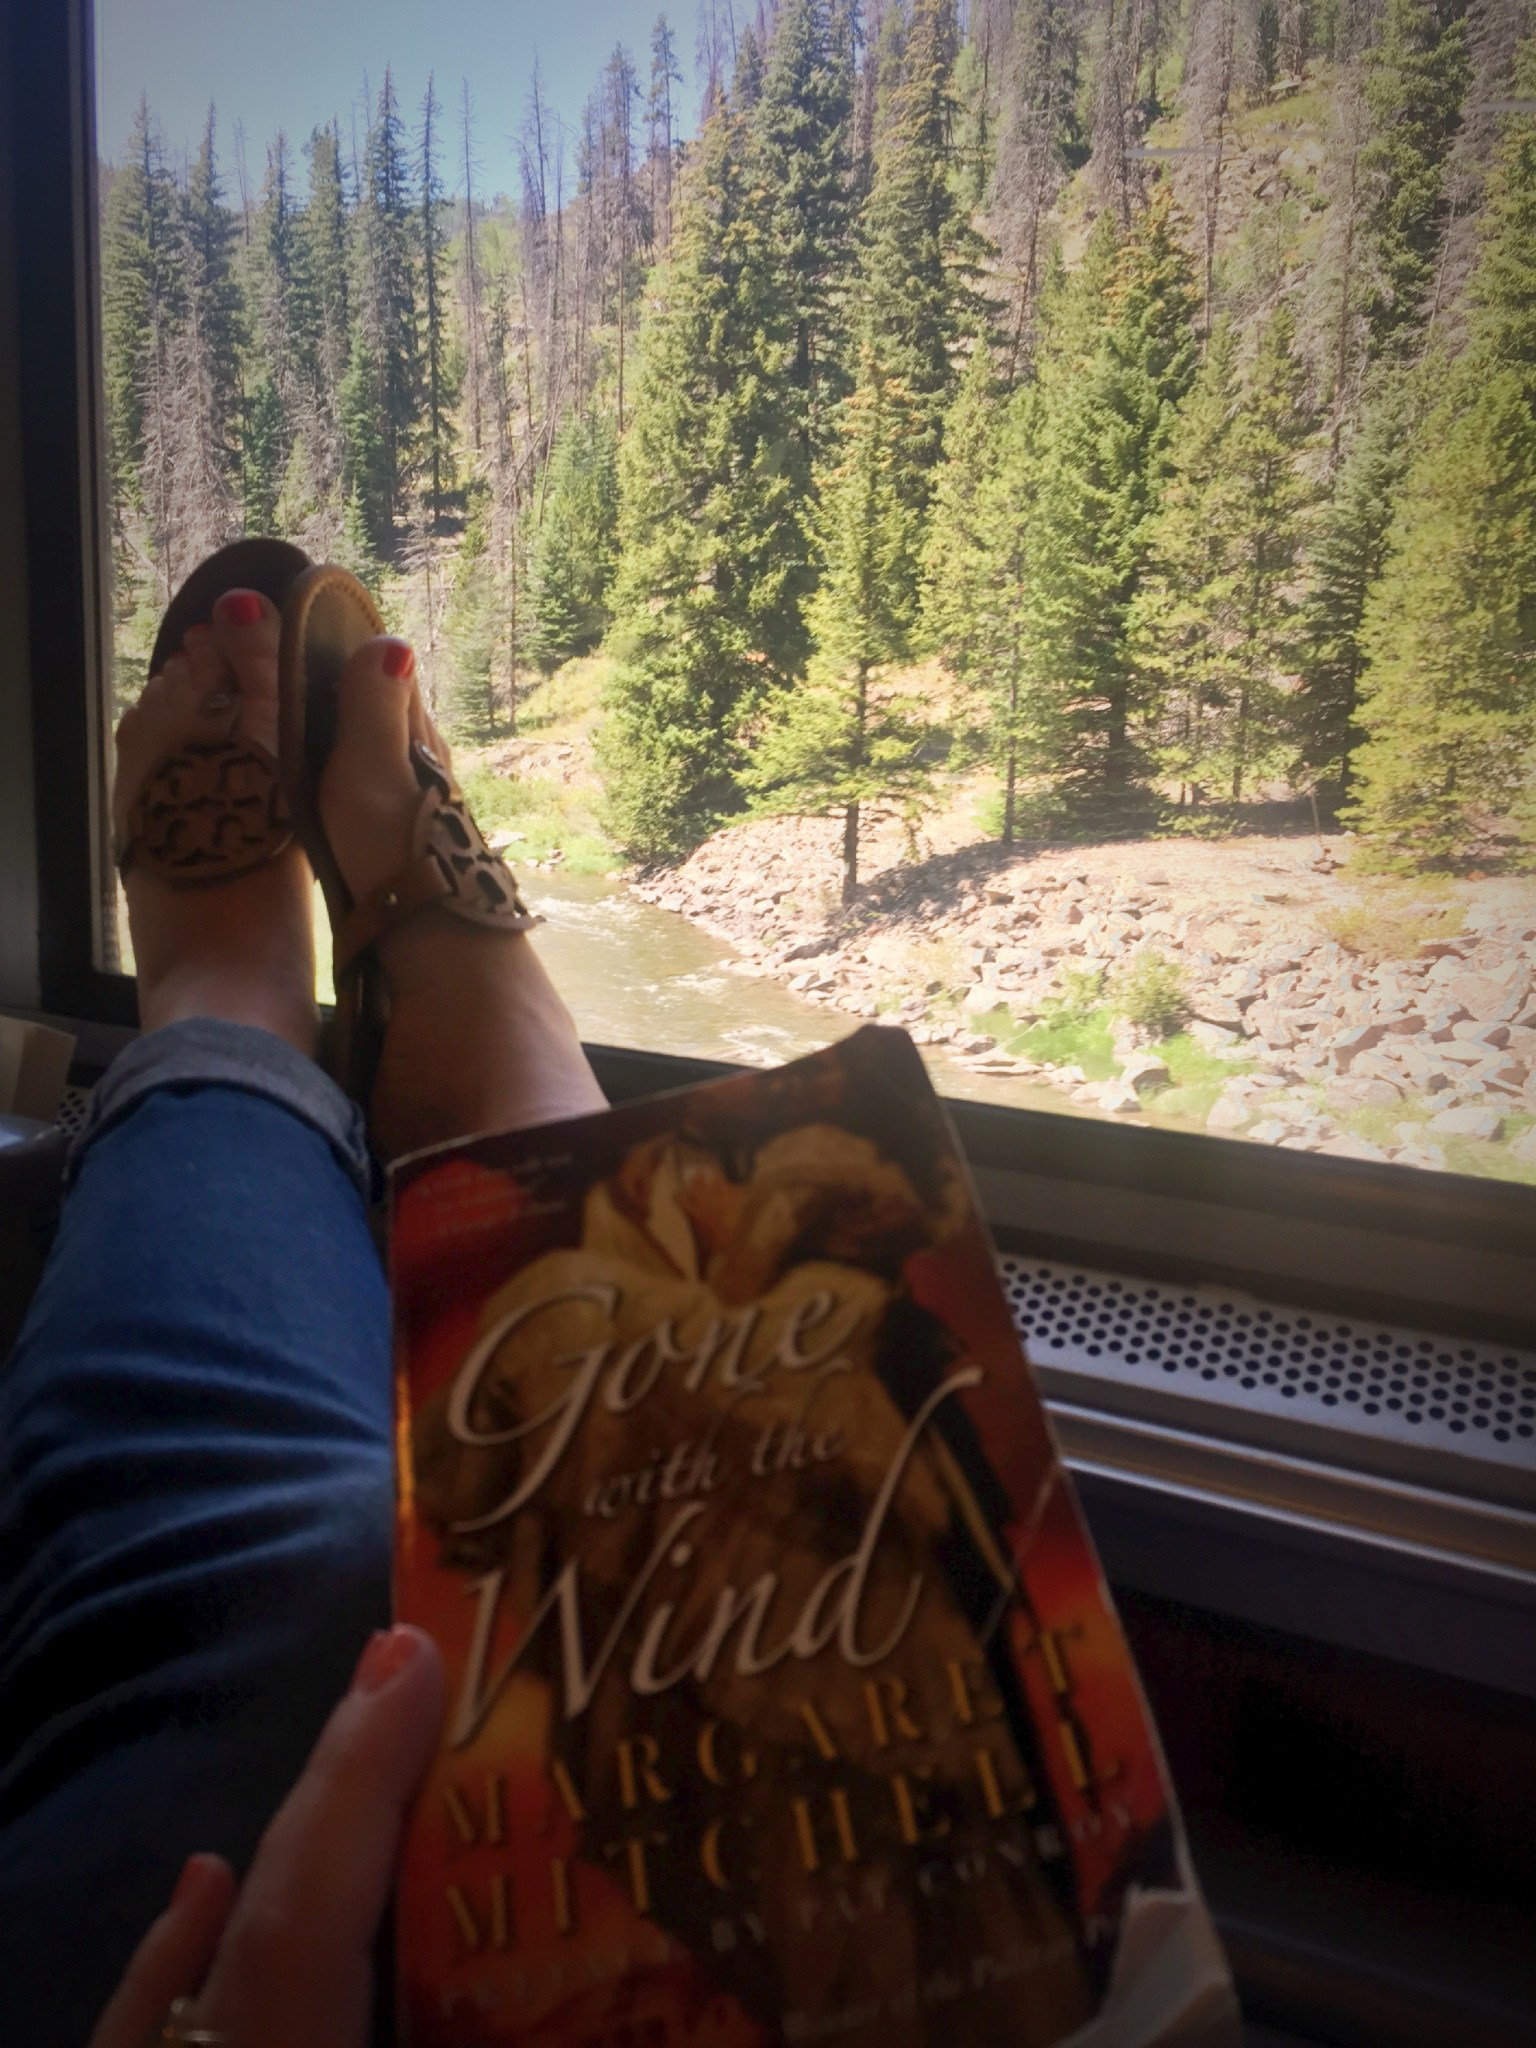 Reading Gone With the Wind while on the cross-country train. In the words of Morgan: #crushingit